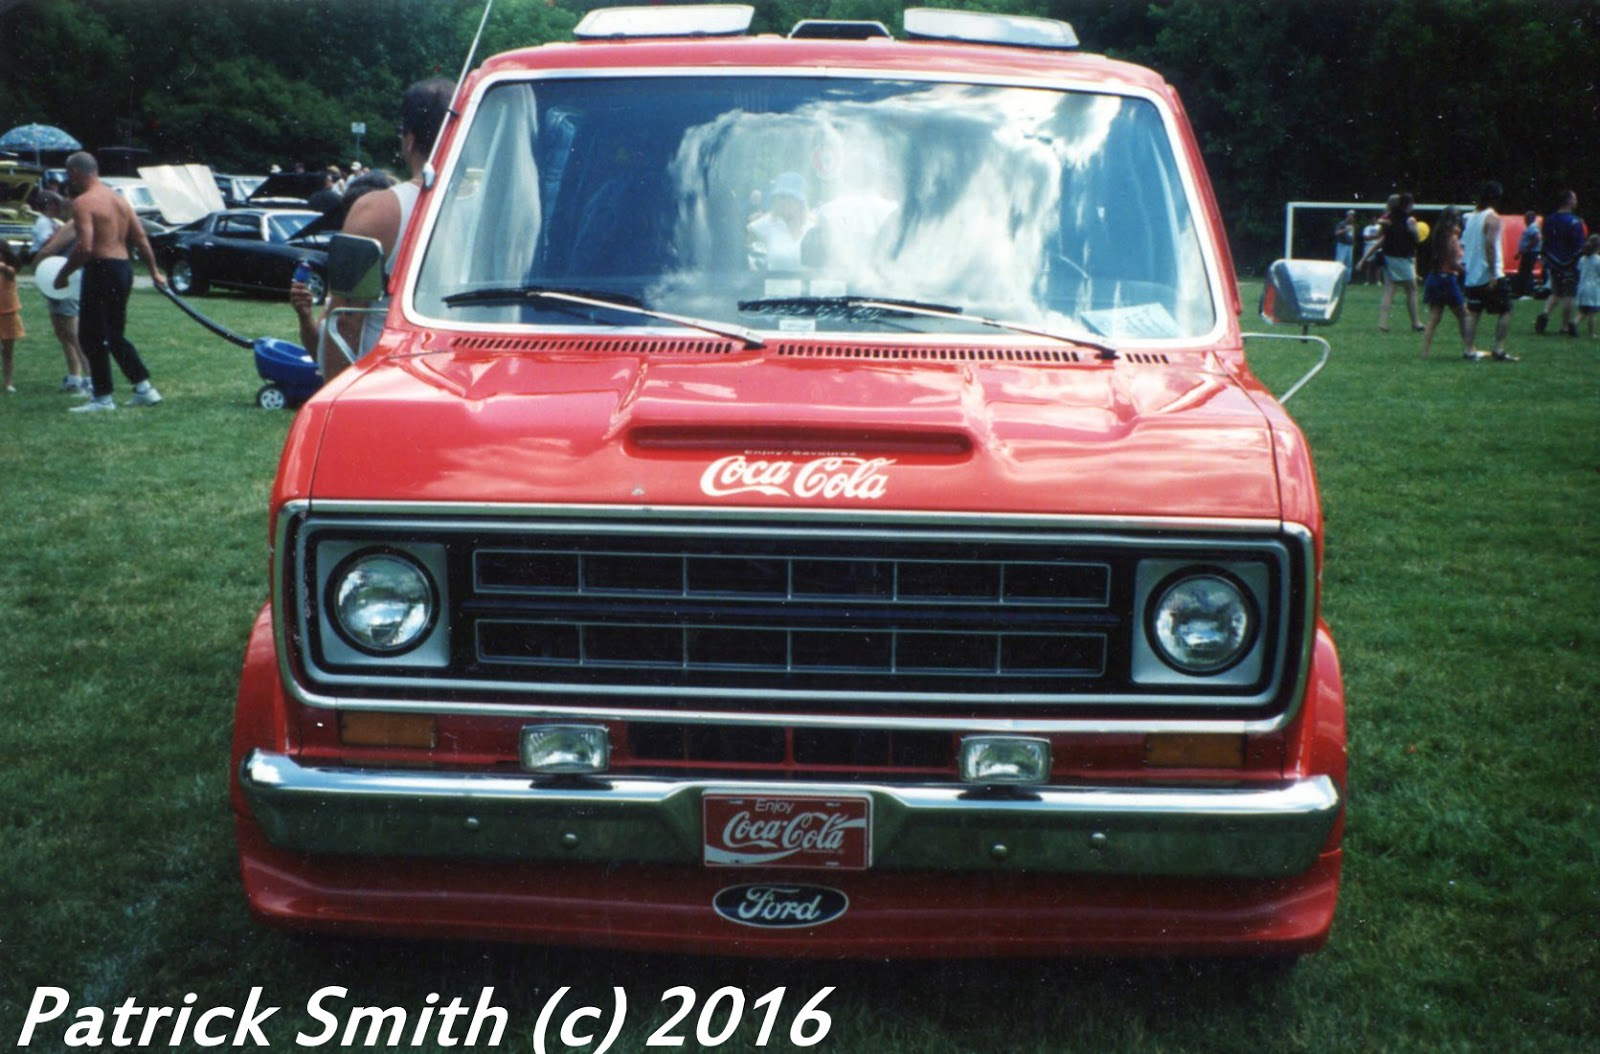 1977 Denimachine Ford Econoline Van Phscollectorcarworld 1967 Vw Beetle Simple Wiring Diagram Coca Cola Levis And Were The Big Players Behind This Promo Hence Red White Blue Nature Of It Only Missed Usas Bicentennial By